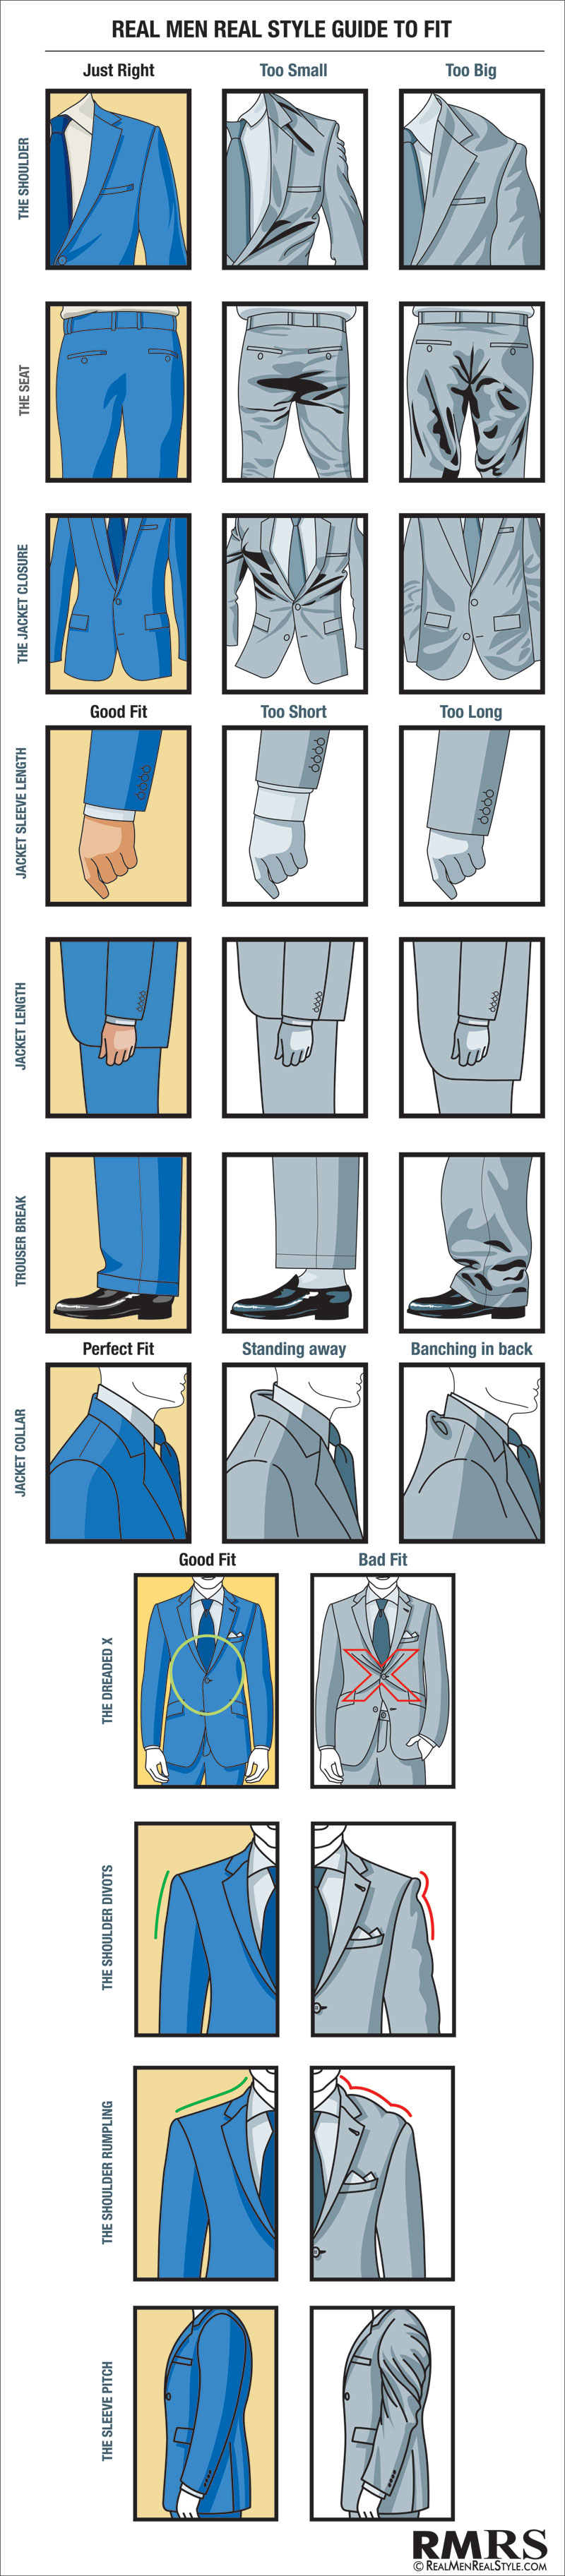 how-suits-should-fit-infographic